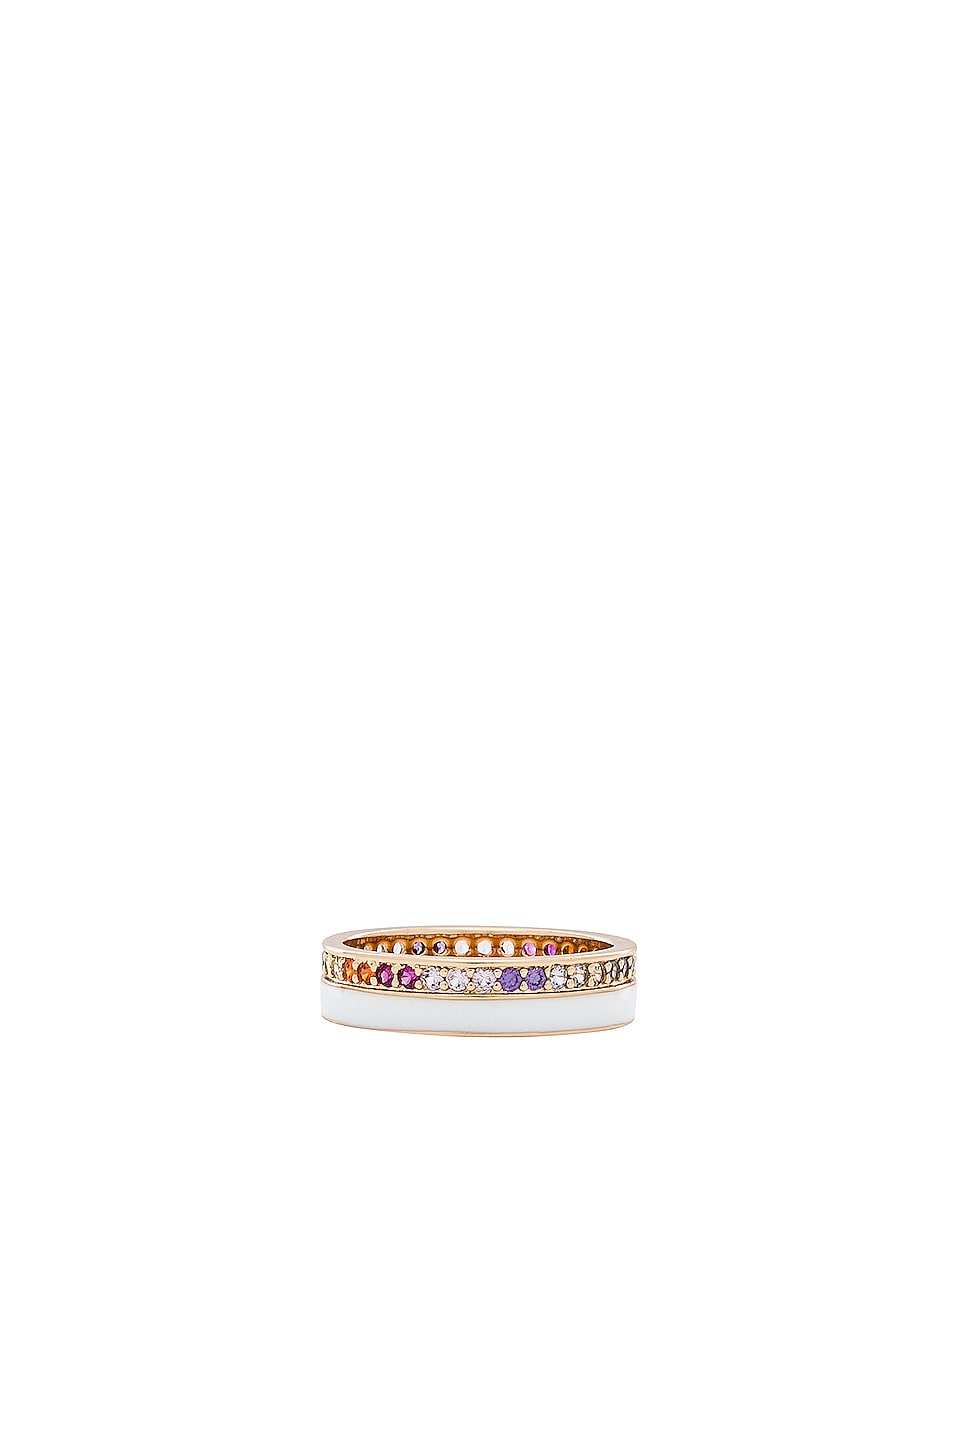 Elizabeth Stone Enamel CZ Ring in Gold, White & Rainbow